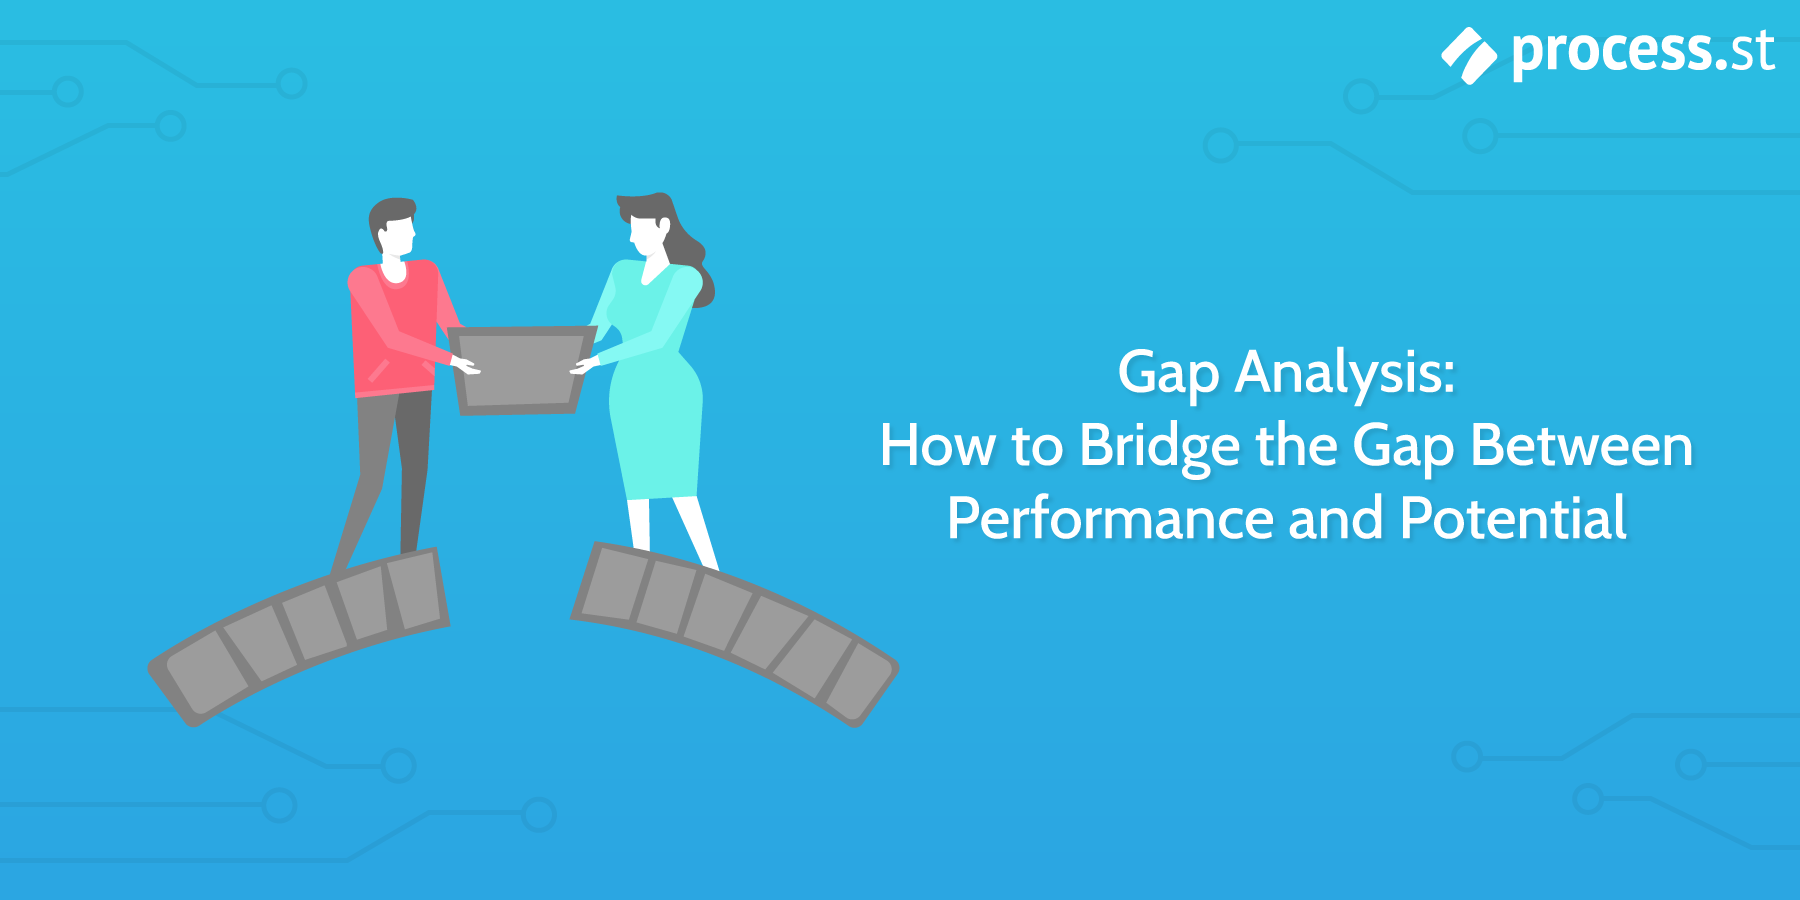 Gap Analysis How to Bridge the Gap Between Performance and Potential